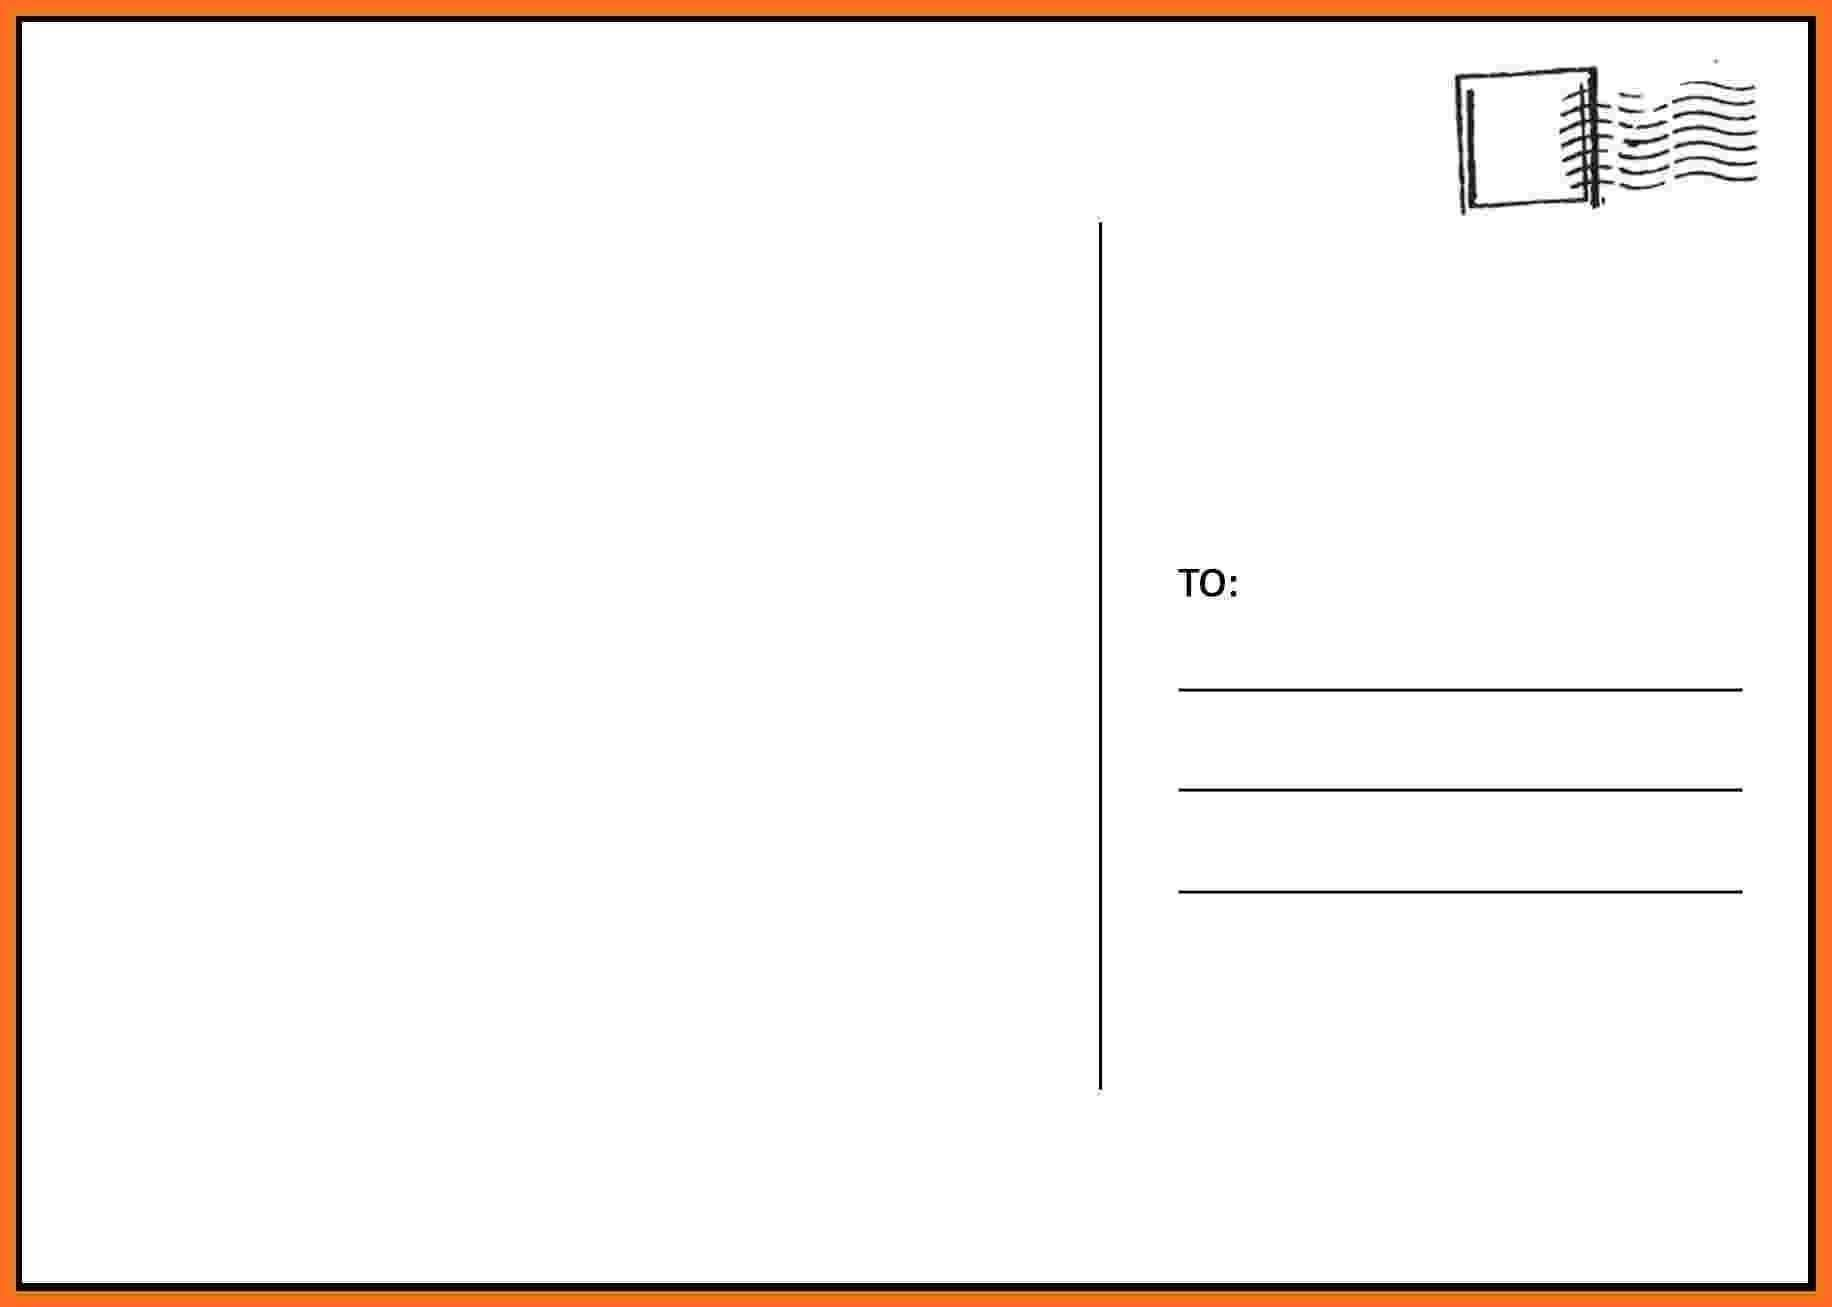 004 Stupendou Postcard Front And Back Template Free Design  To SchoolFull